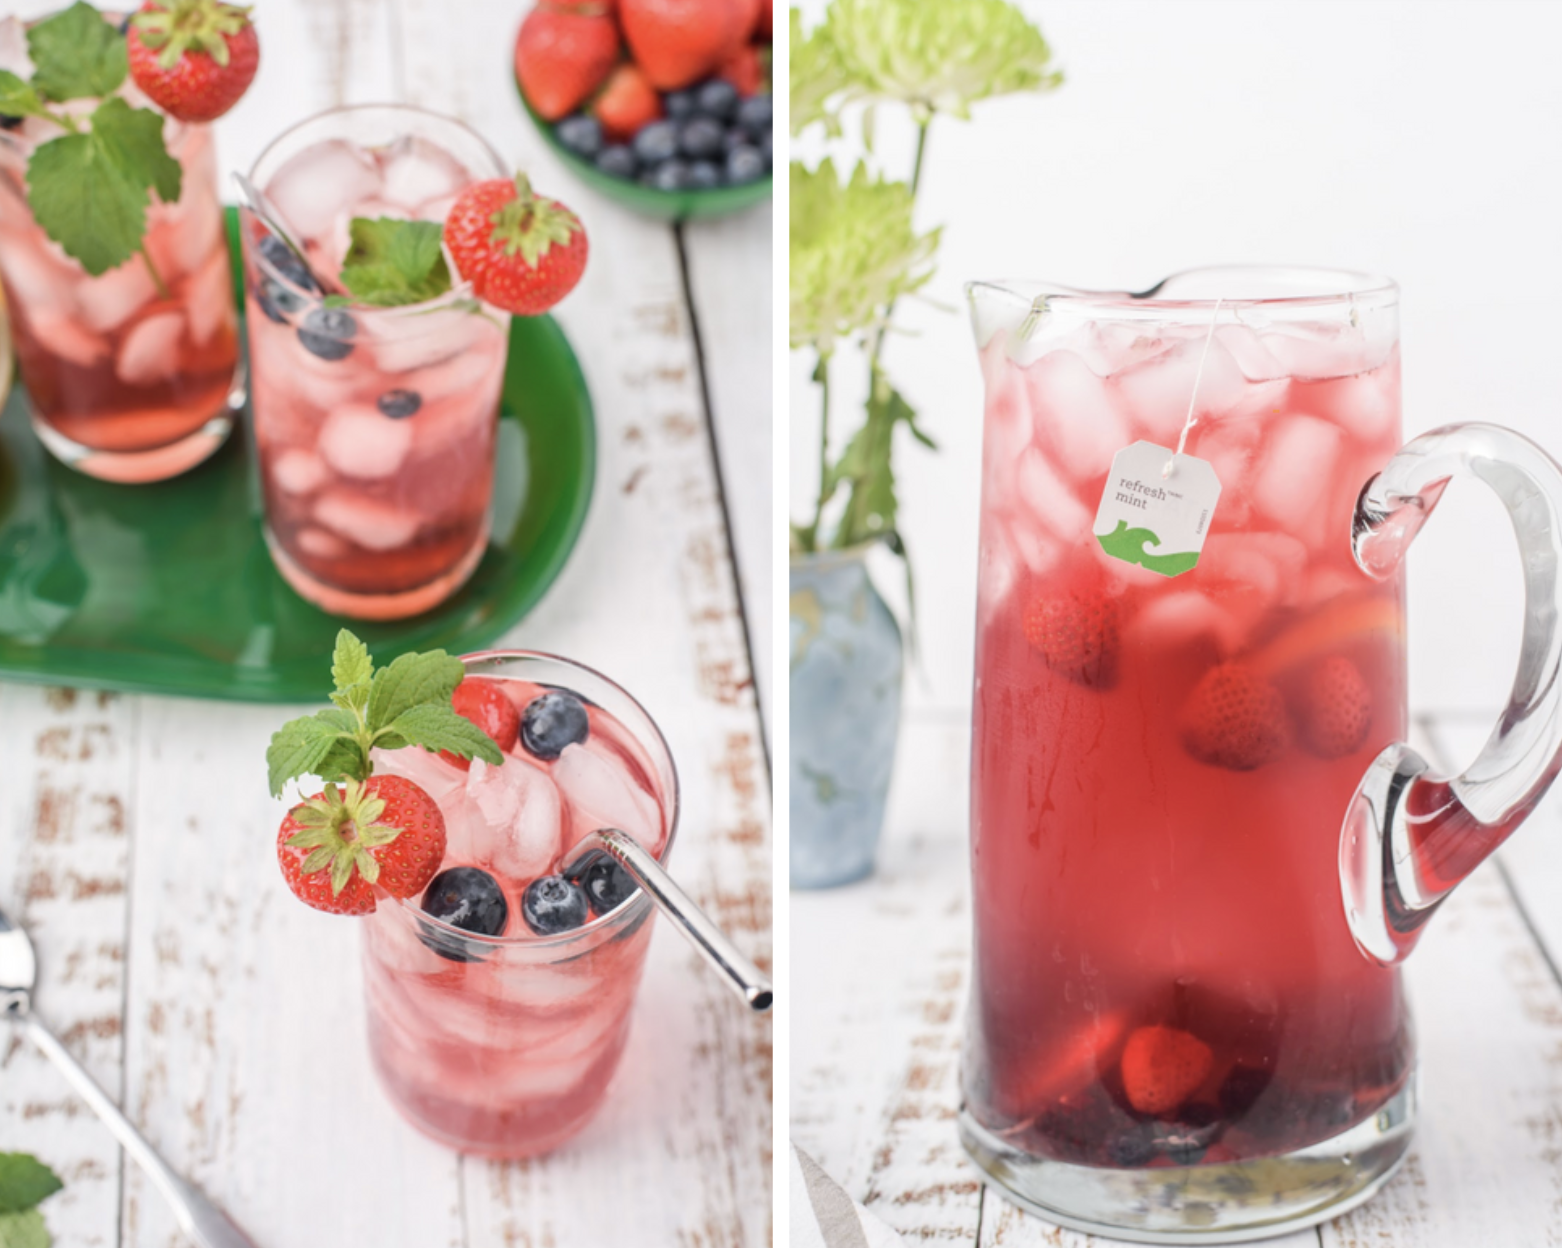 This tasty, refreshing and easy to make ginger mint berry iced tea is perfect for your next family barbecue or any get together this summer!#icedtea #summerdrink #berries #minttea #berrydrink #mintberry #strawberries #foodies #foodblogger #yummy